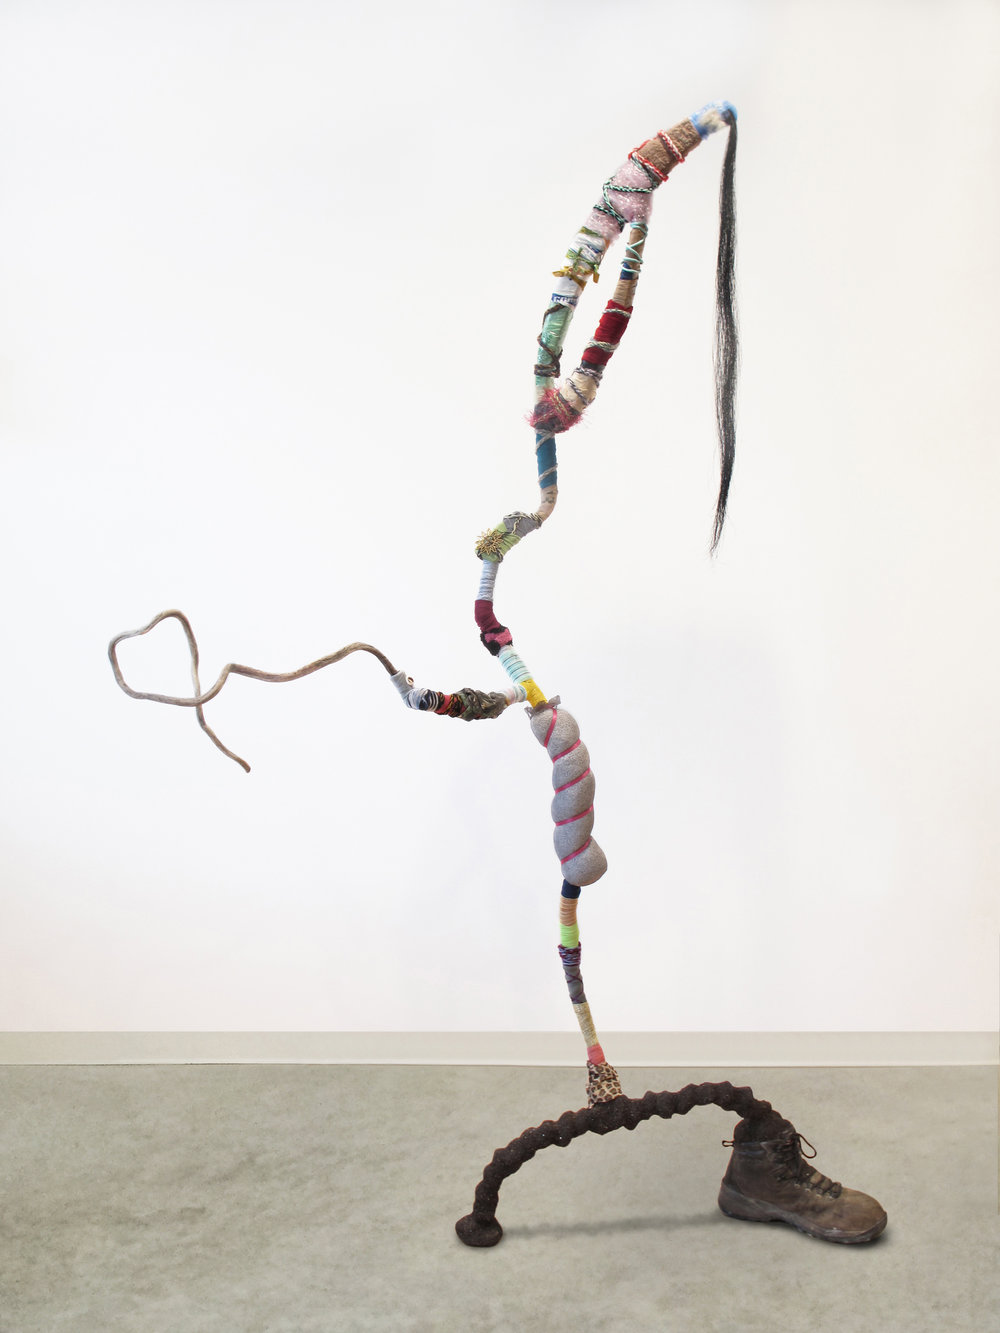 "Gina Herrera,  A Salutation to All , Assorted found materials, 77 x 50 x 19 inches   ""Reclaimed natural and man-made waste take on a humanoid shape, down to the wide-legged stance featuring an abandoned work boot. A twisting stick appendage extends in greeting, seeks acknowledgement."""